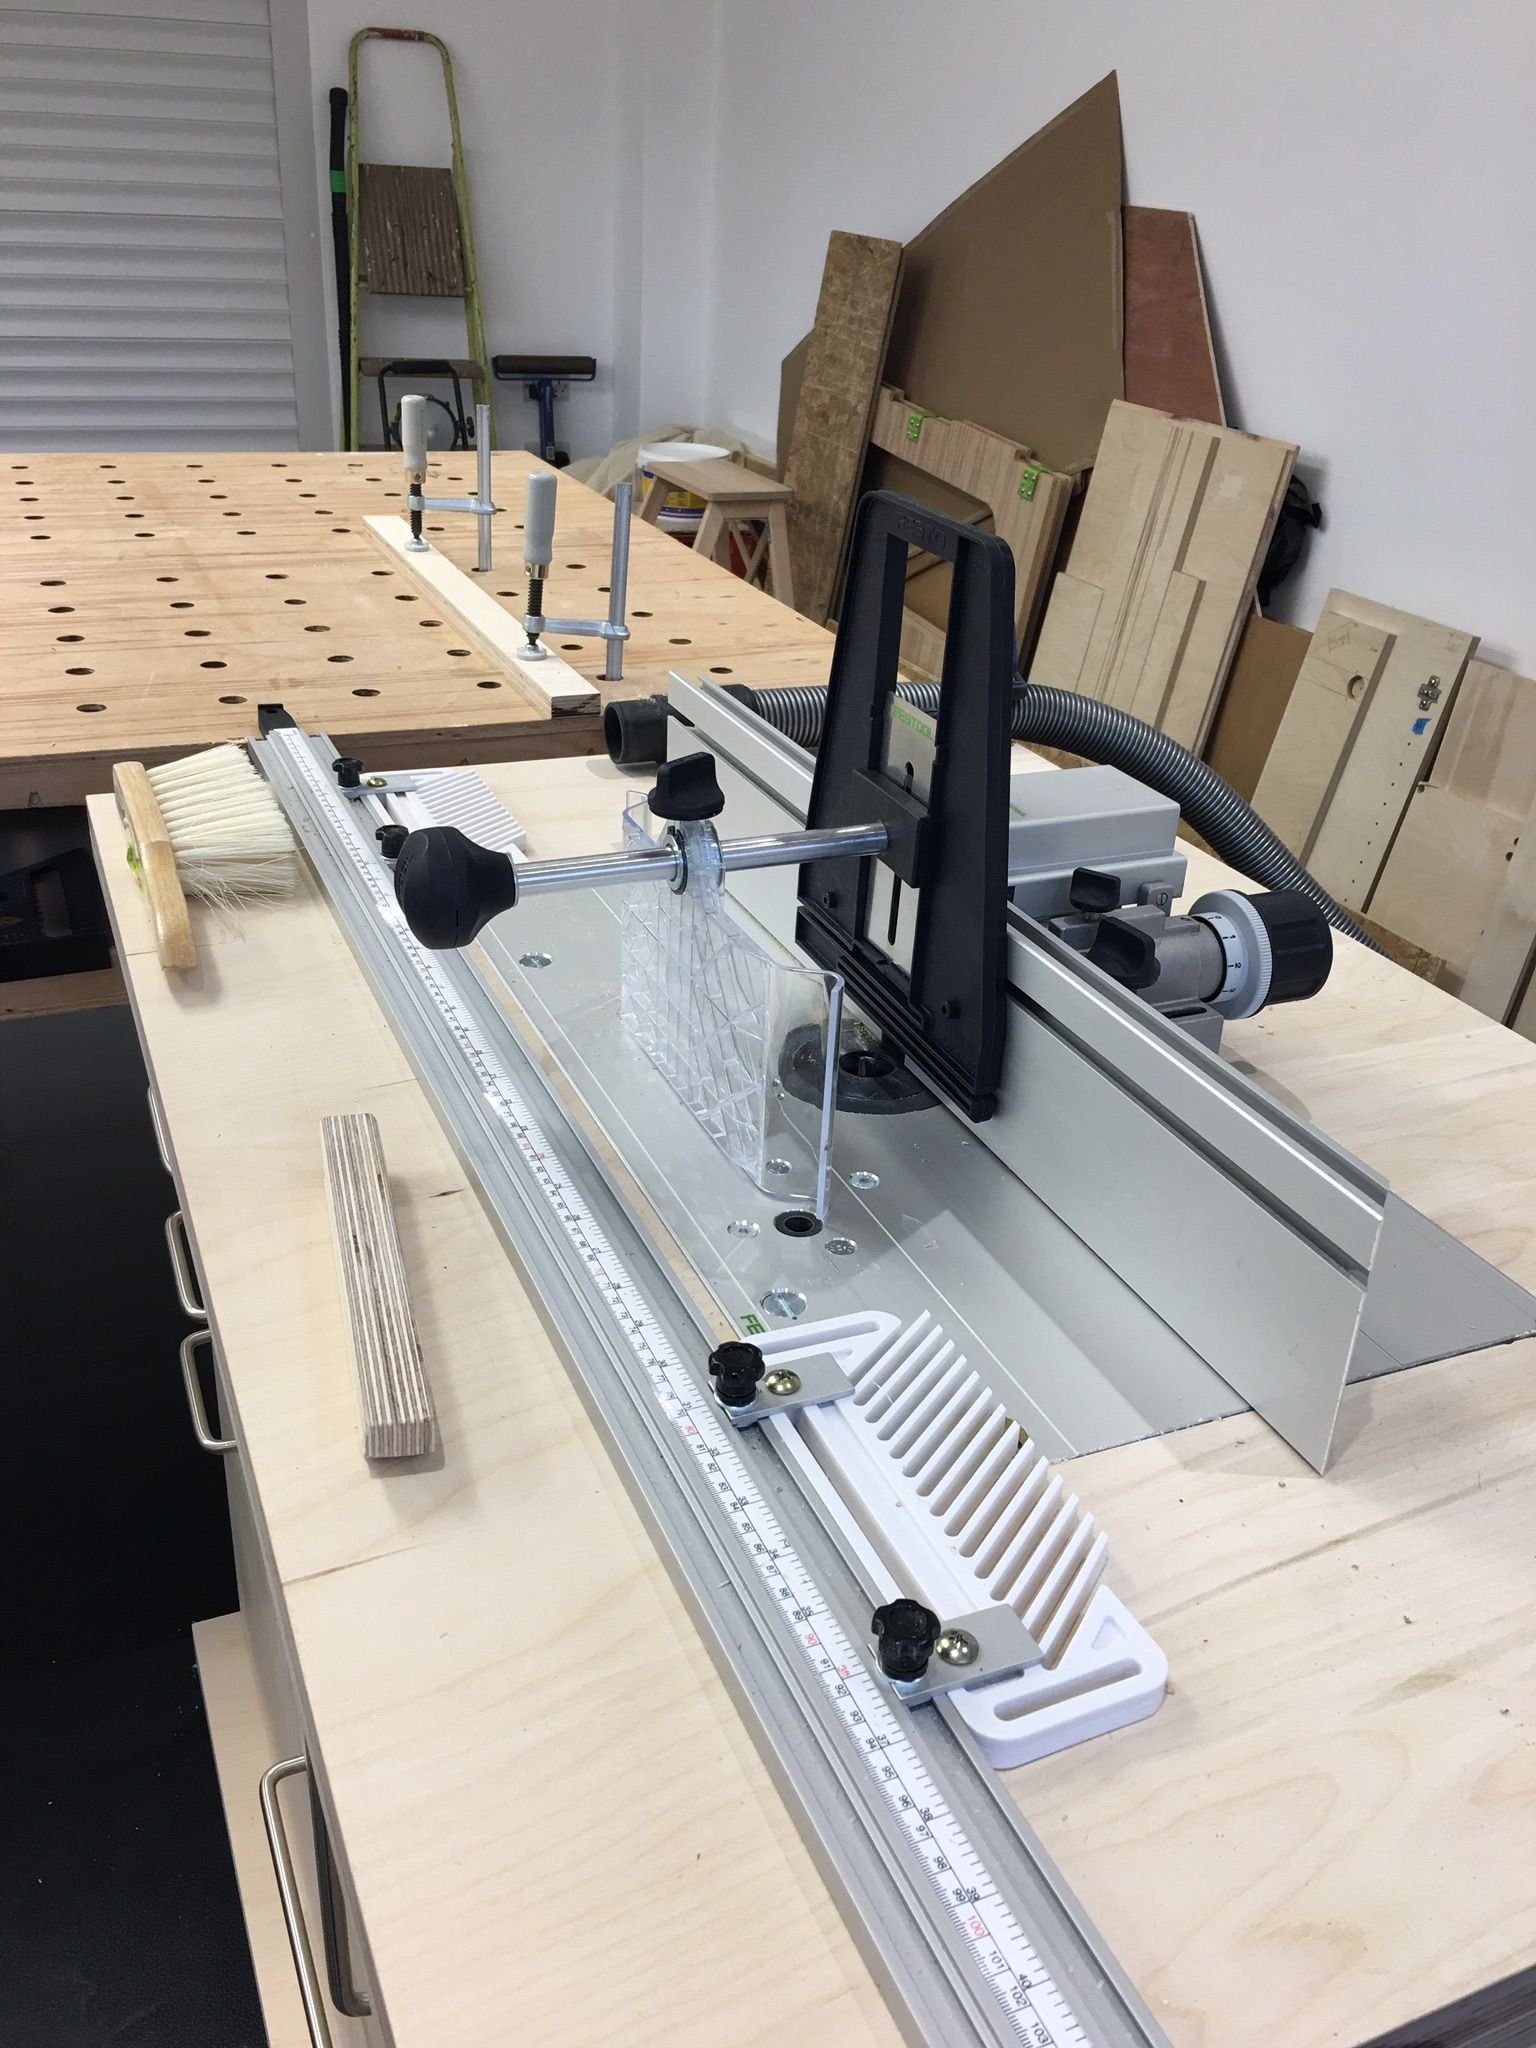 Homemade router table top  Festool new Router Table setup for some long narrow components